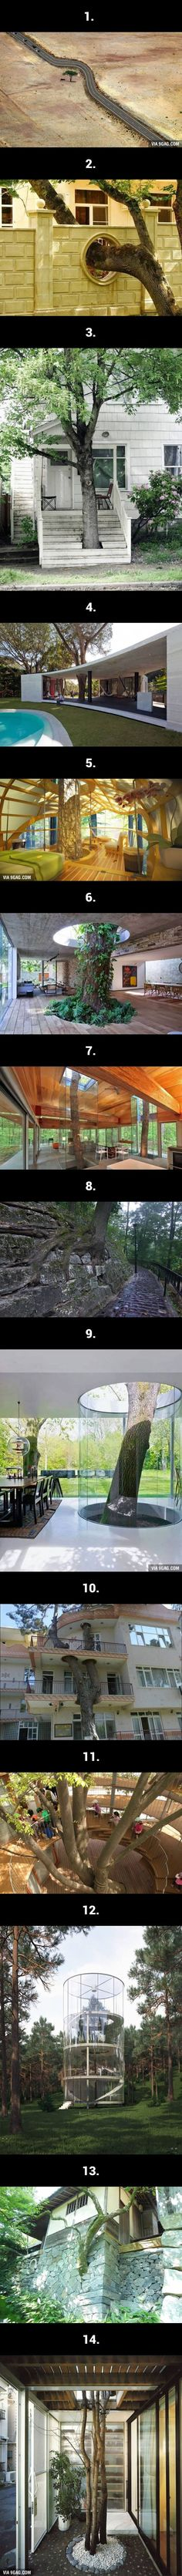 14 Inspirational Ways Mankind Has Respected The Natural World - 9GAG